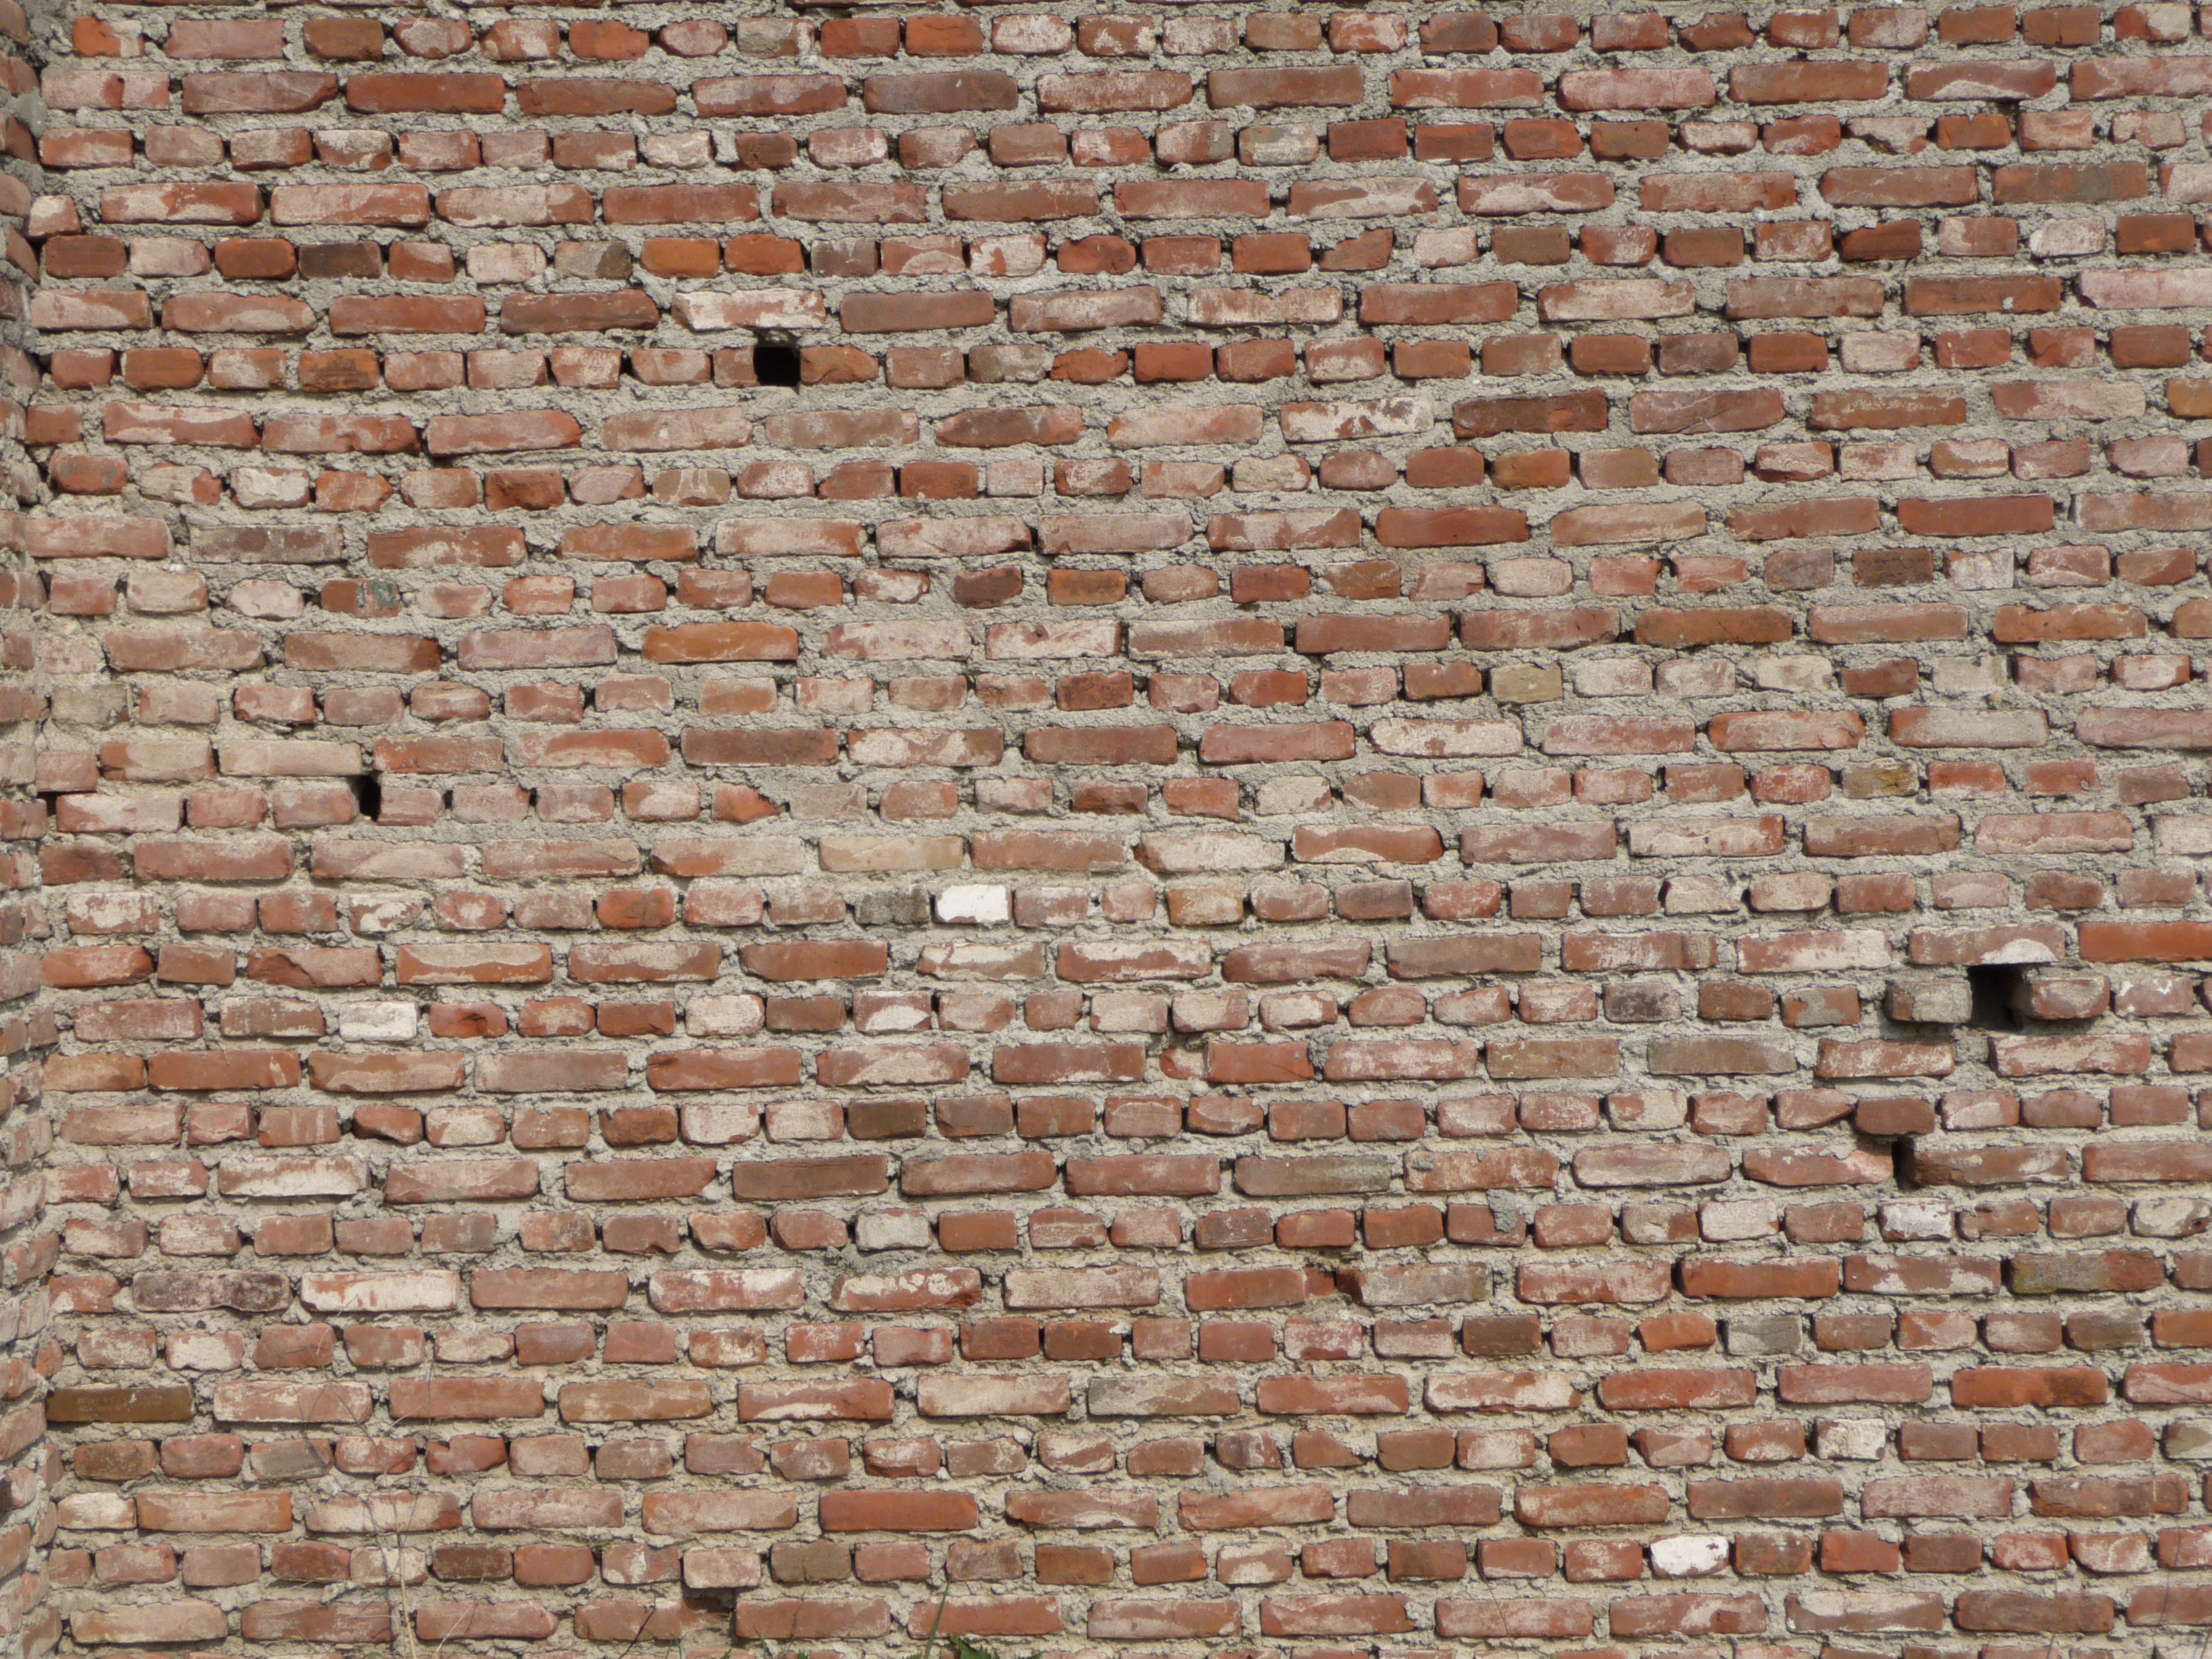 39 Handpicked Brick Wallpapers For Download 3264x2448